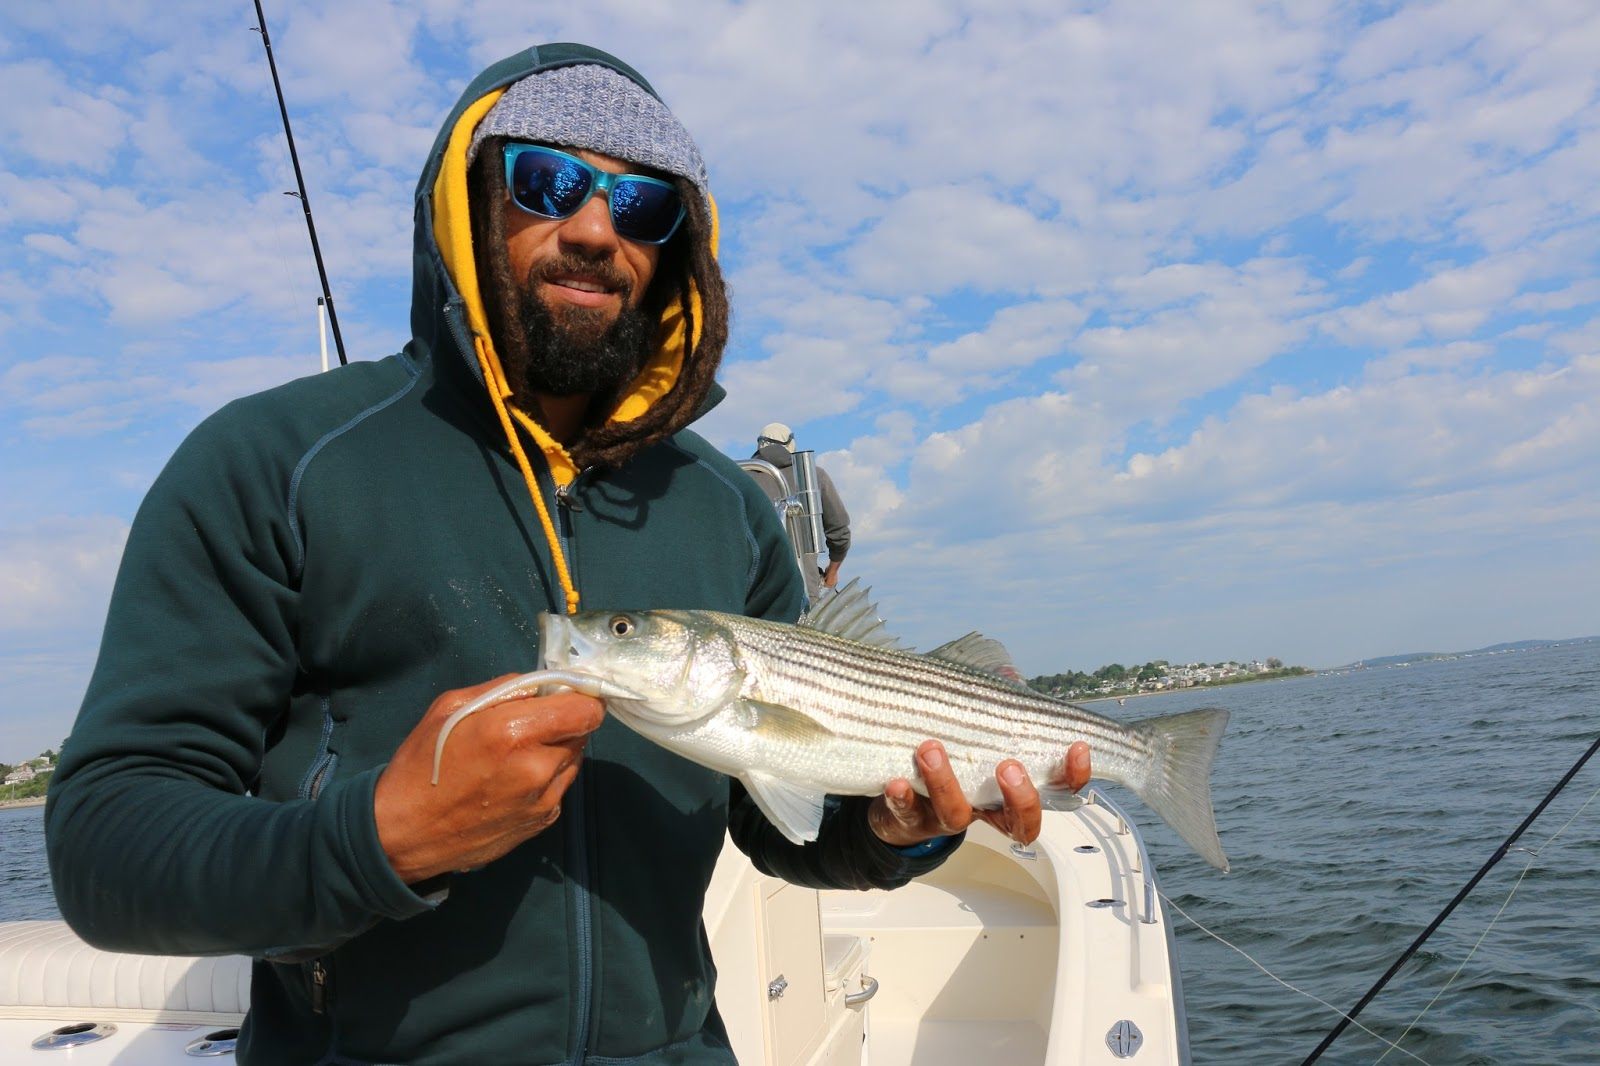 Branle fly fish striped bass body